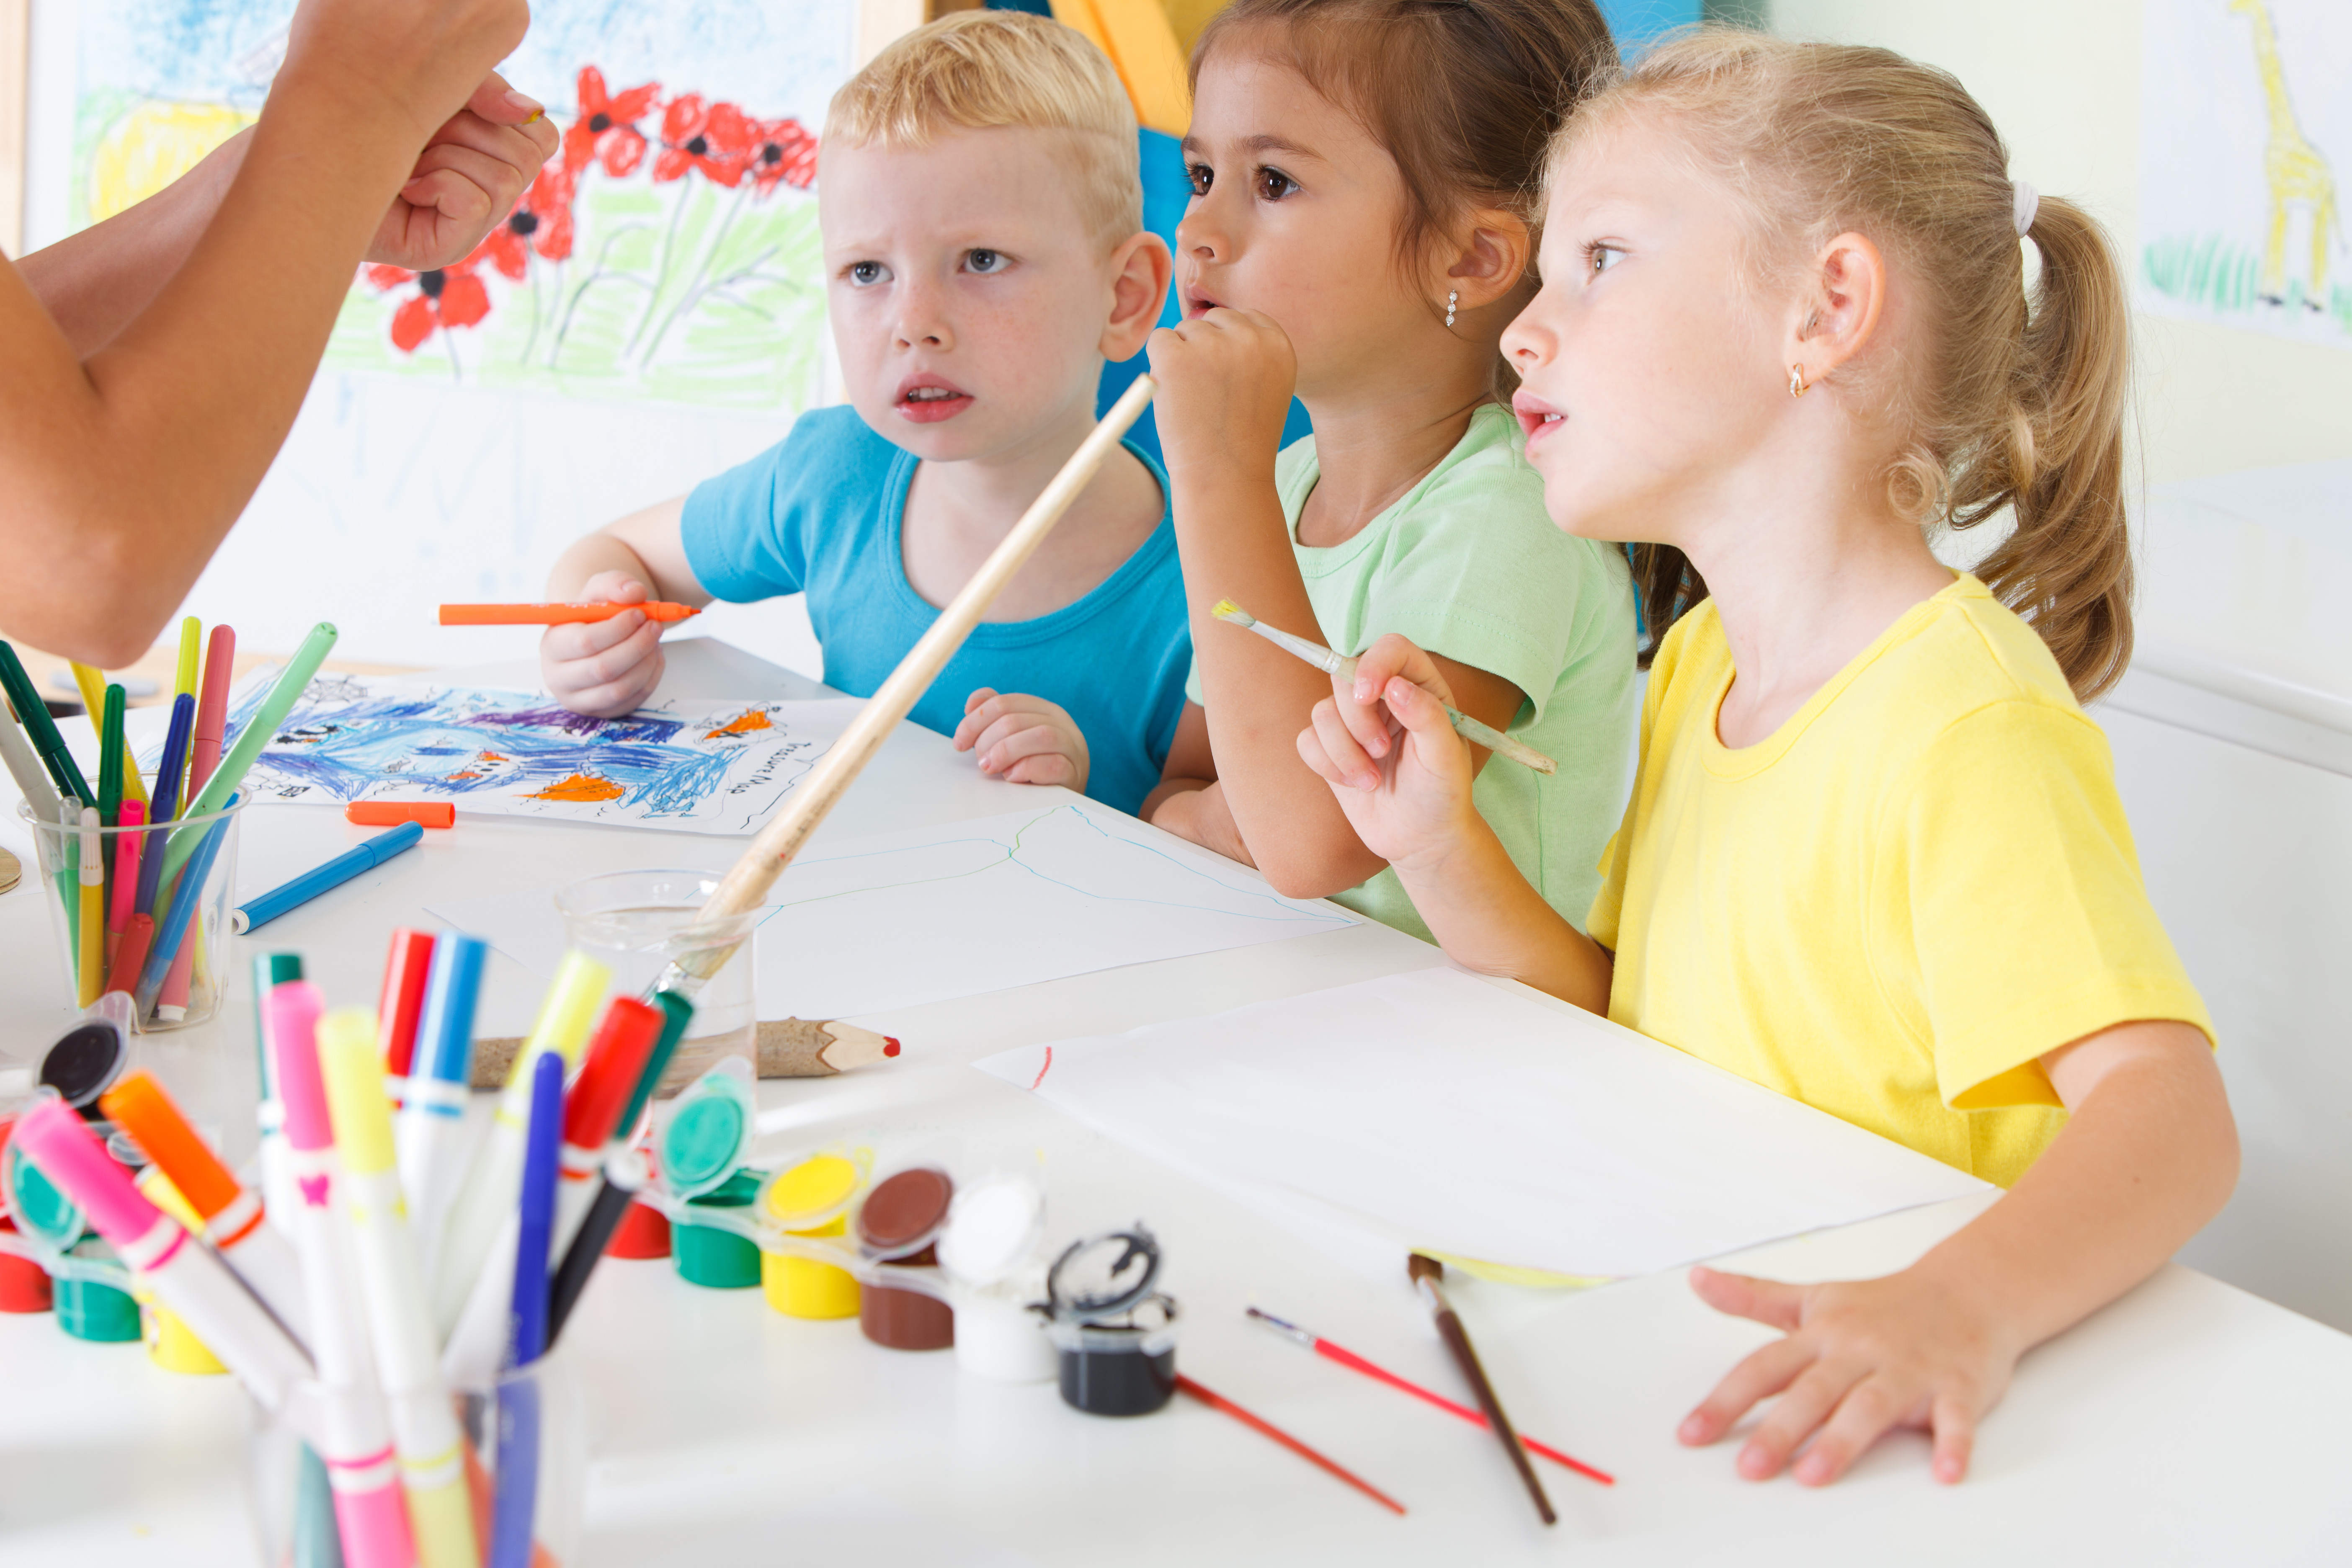 Children draw in the classroom